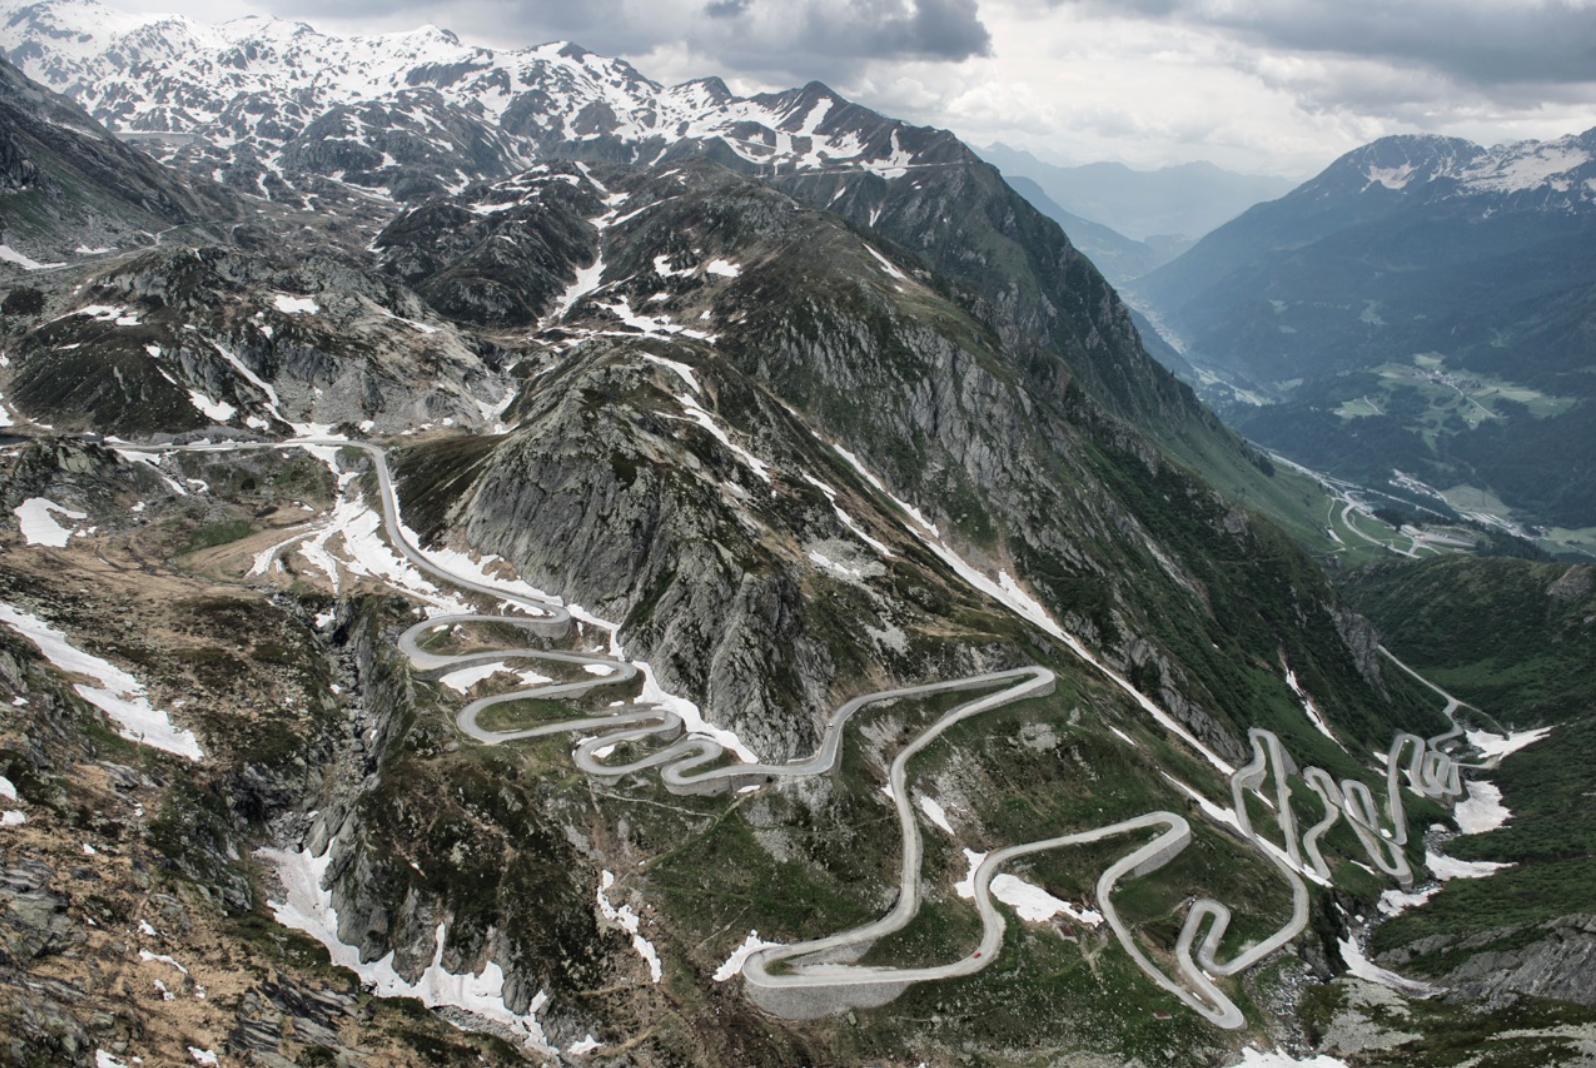 cycle touring europe the gotthard pass when to go. Black Bedroom Furniture Sets. Home Design Ideas